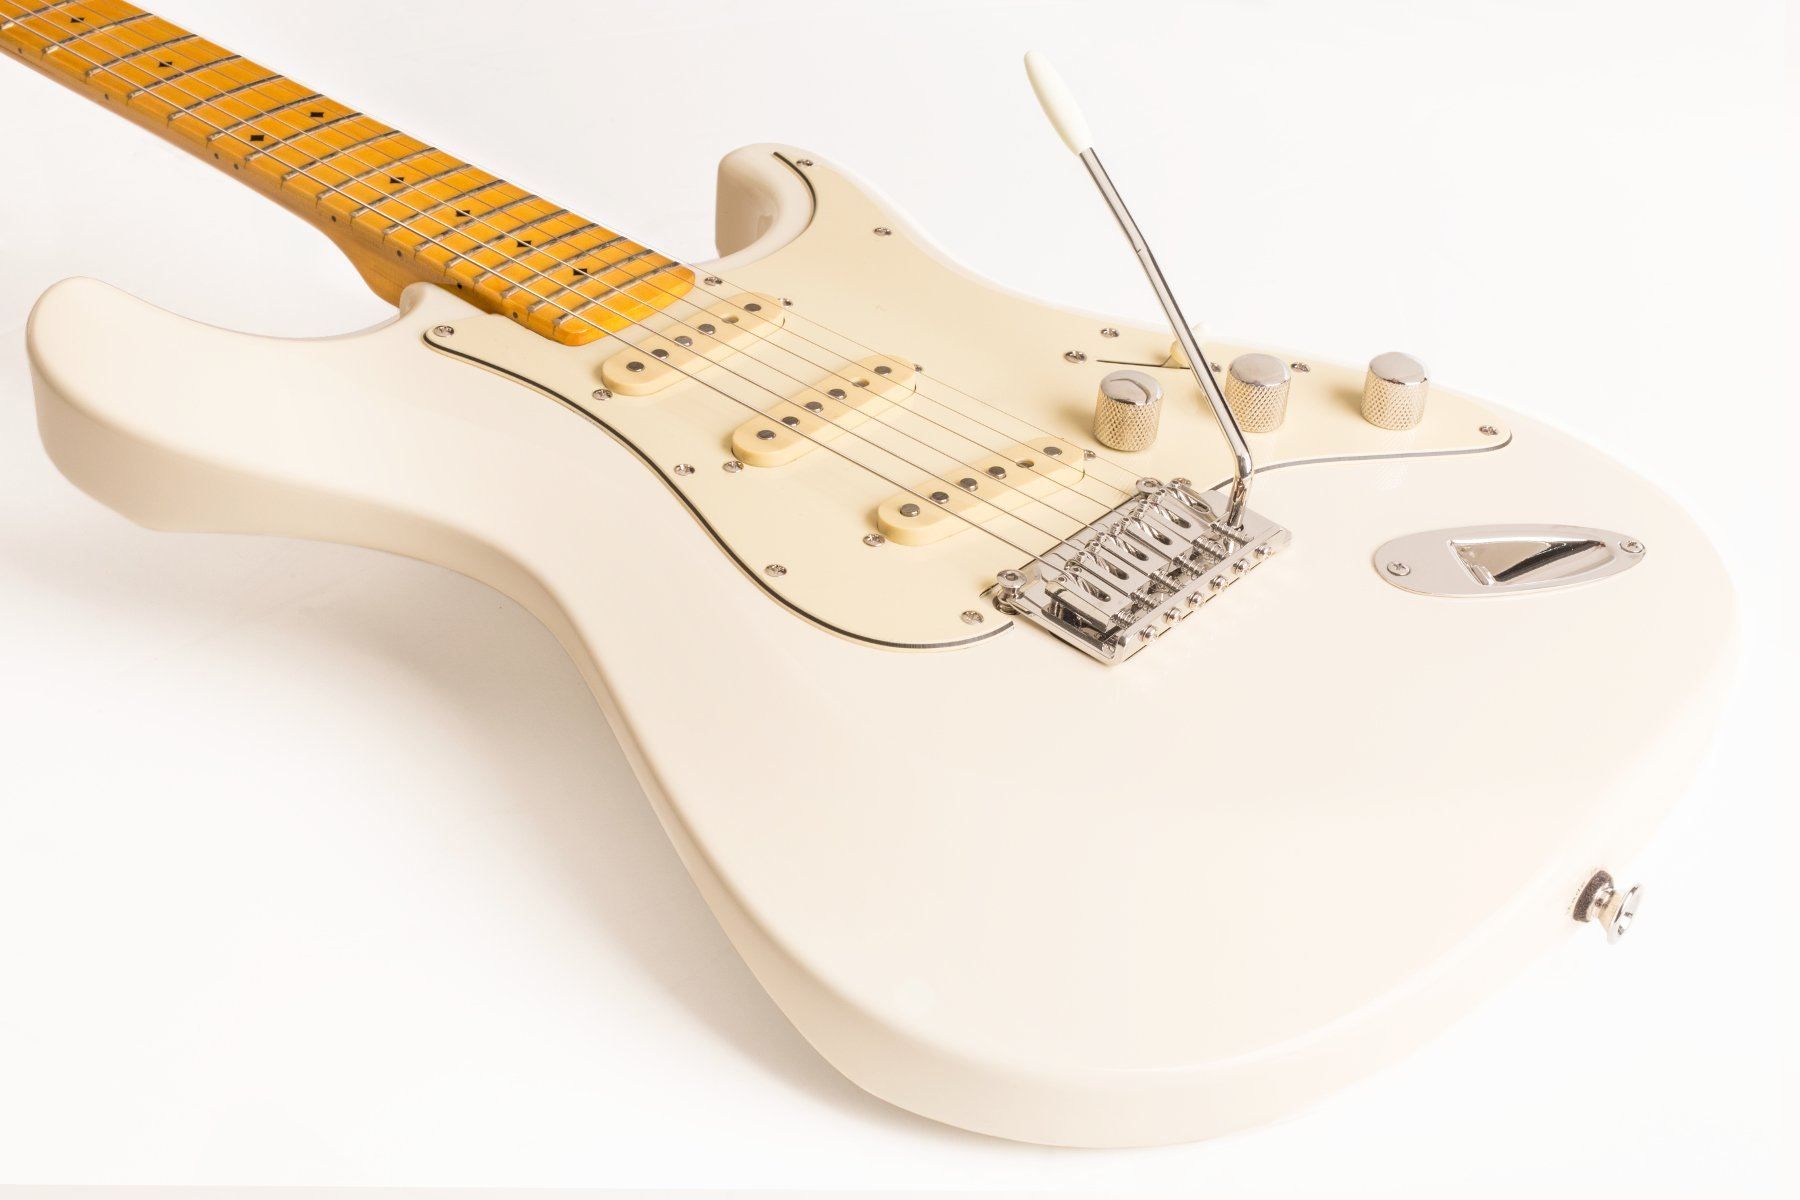 Electric Guitar with Z-Glide Neck, Alder Body, and SSS Pickup Configuration